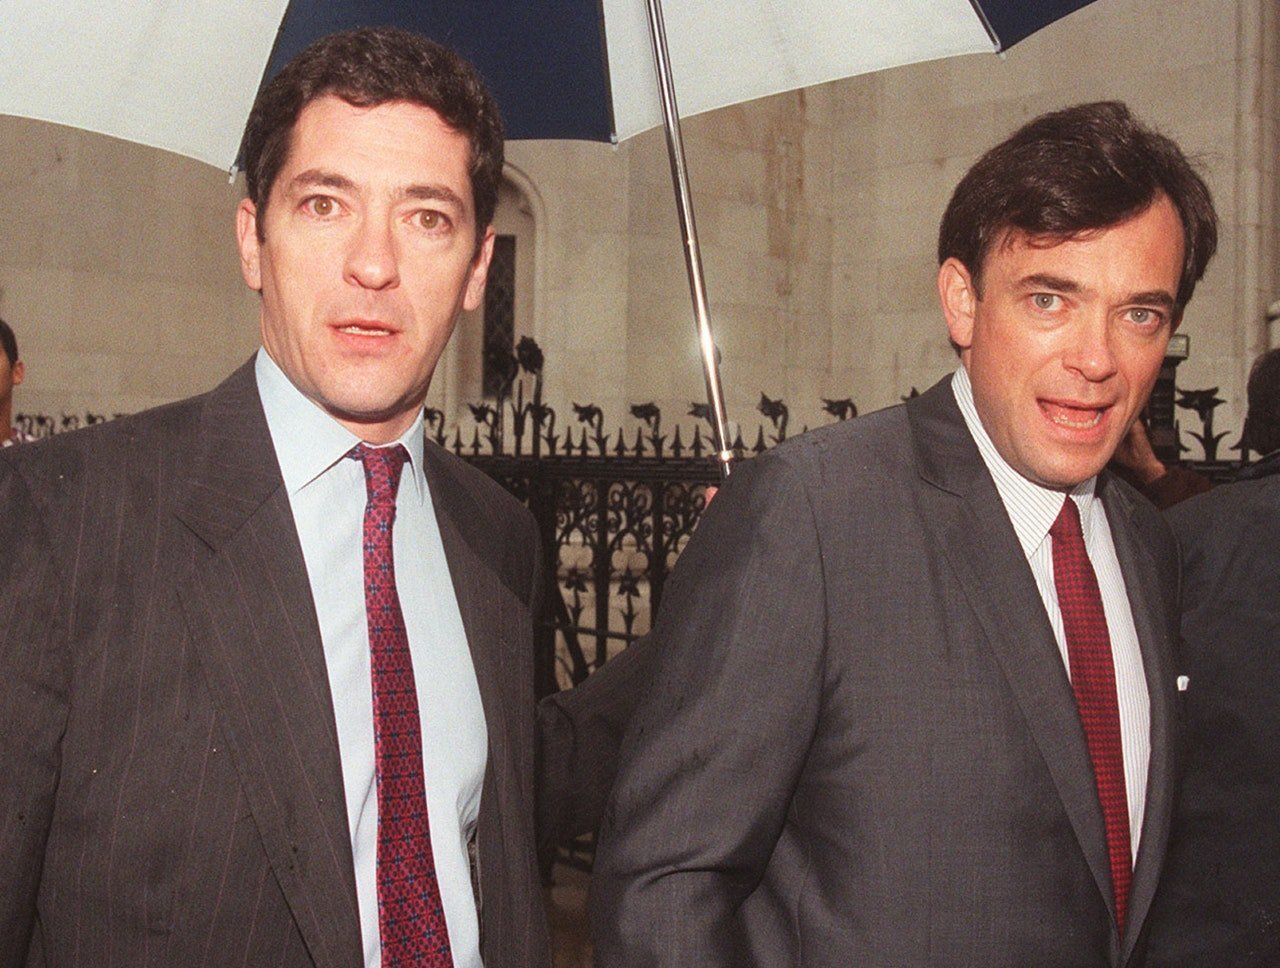 Robert Maxwell's Sons Break 27 Year Silence About Father's 'Unexplained'